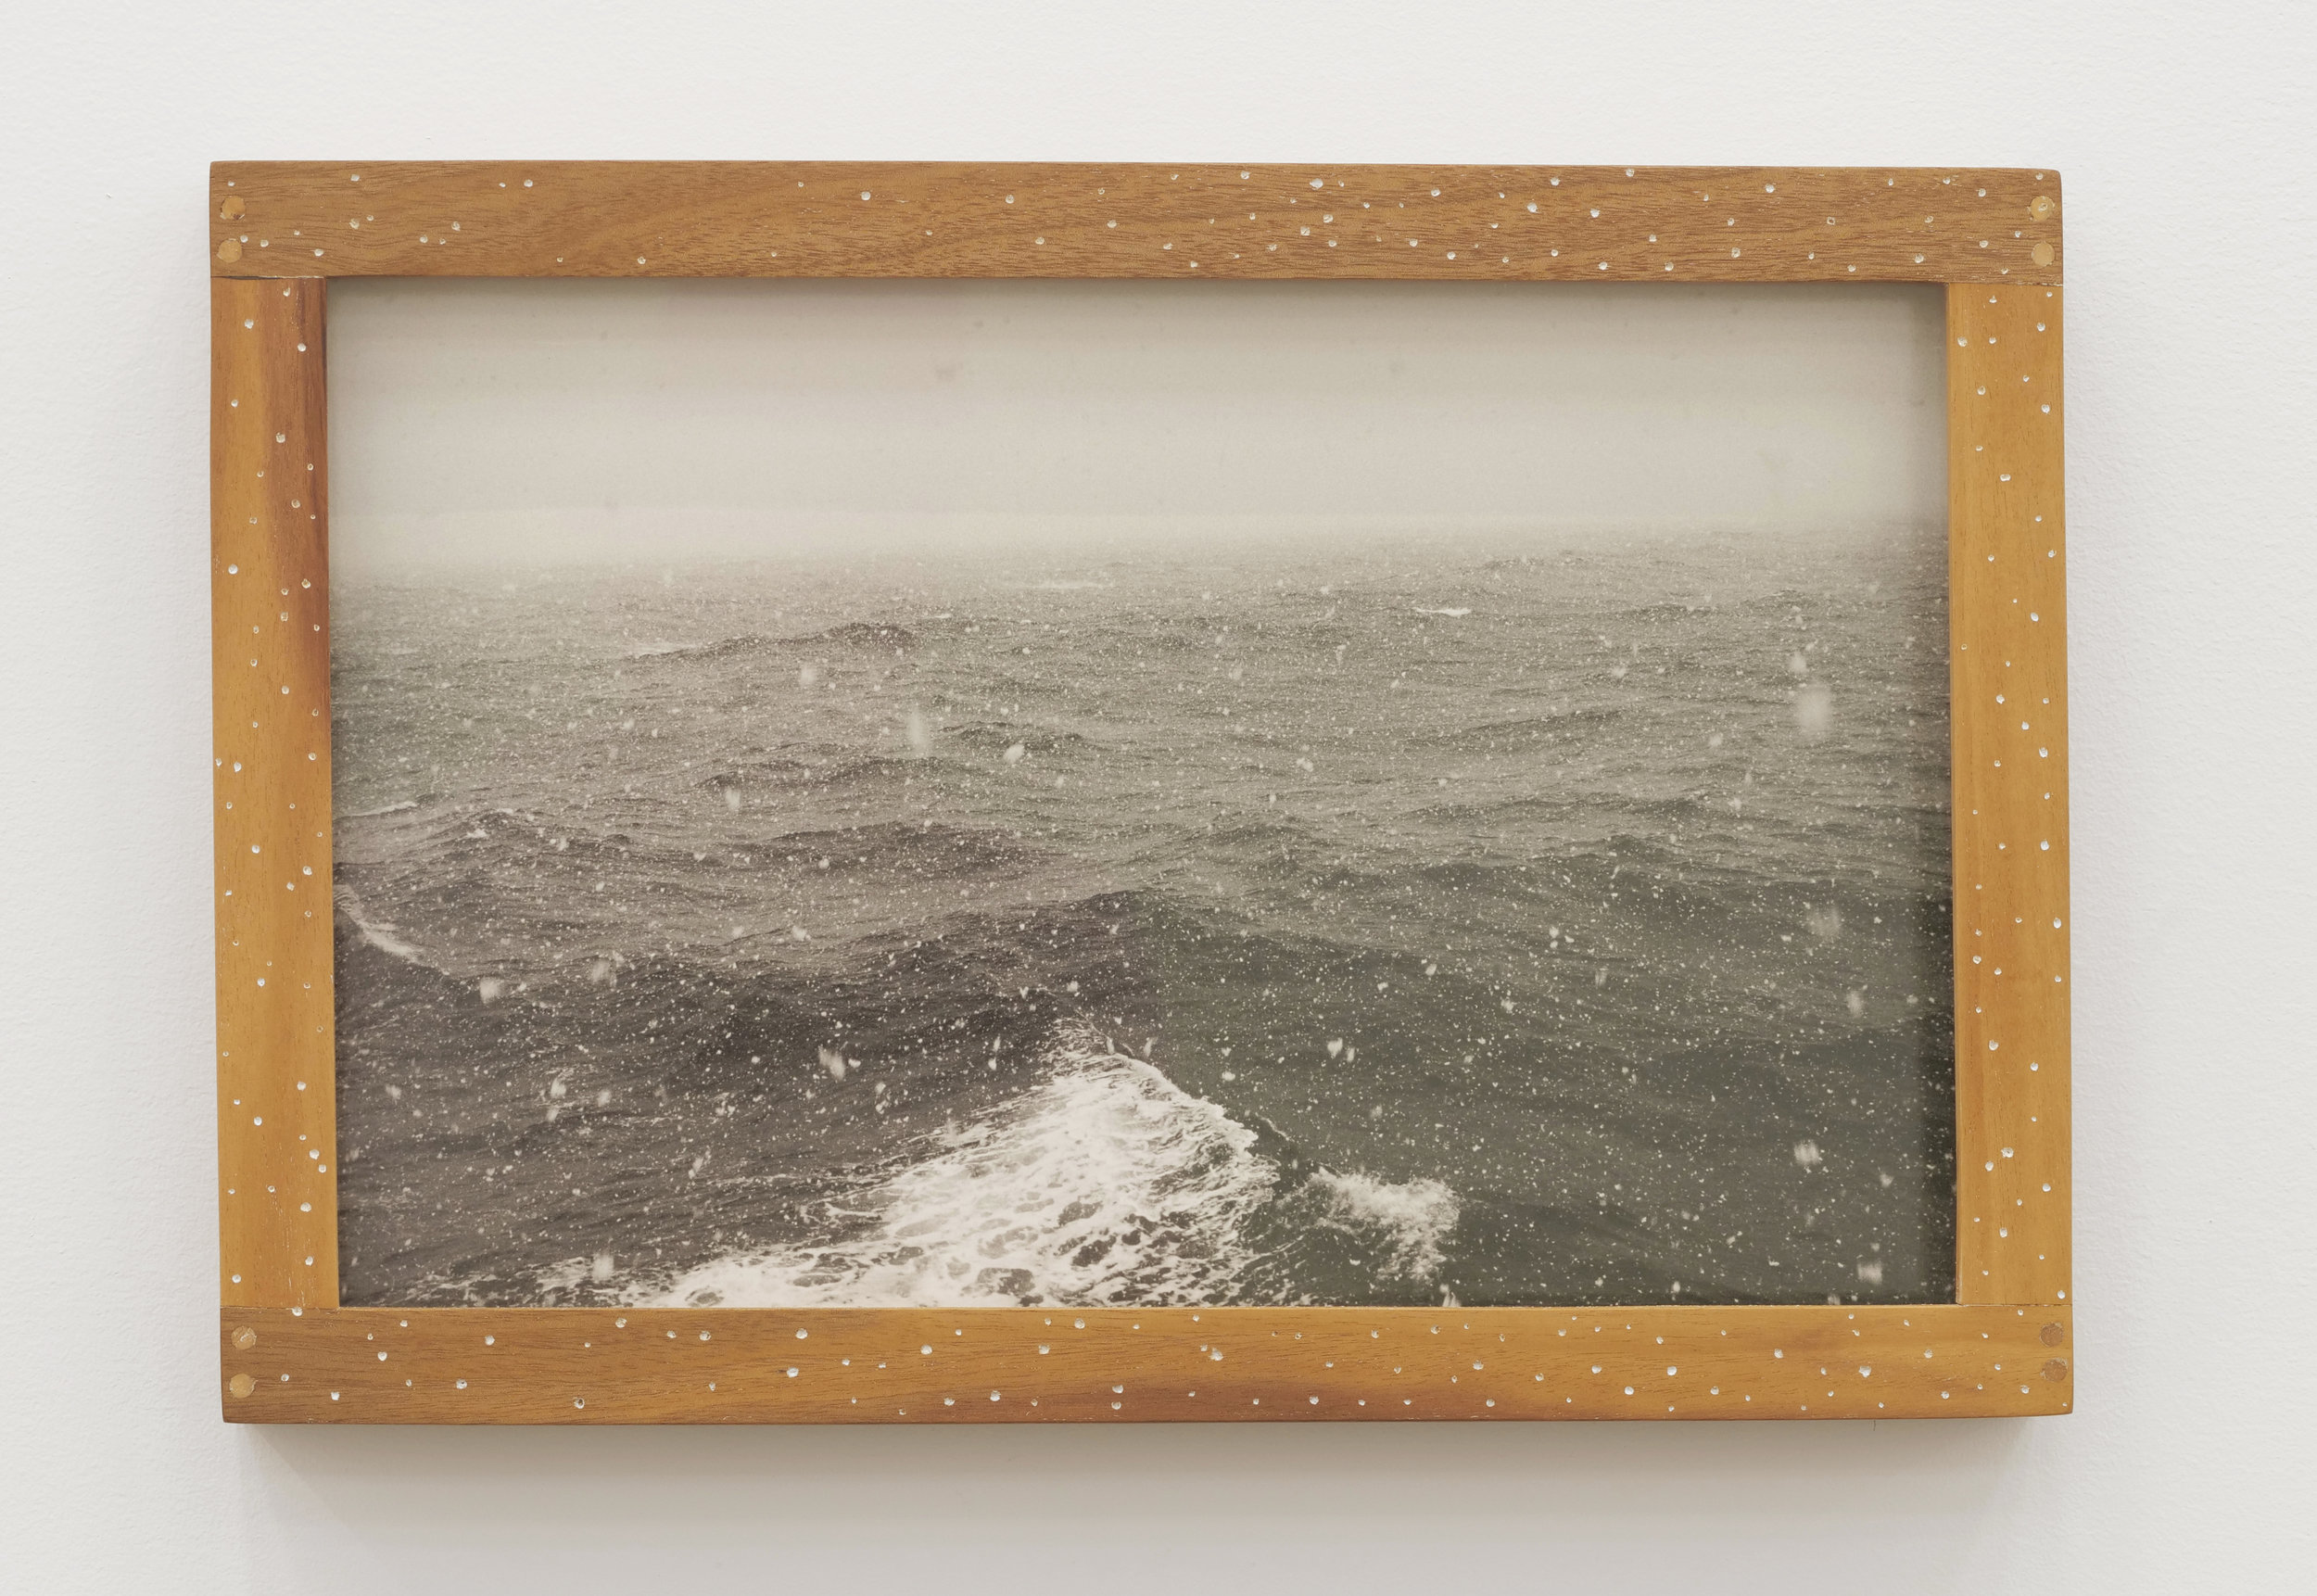 Will Rogan,  Drake Passage , 2018, Gelatin silver print, wood, paint, 9 3/4 x 14 3/8 x 1 1/2 in